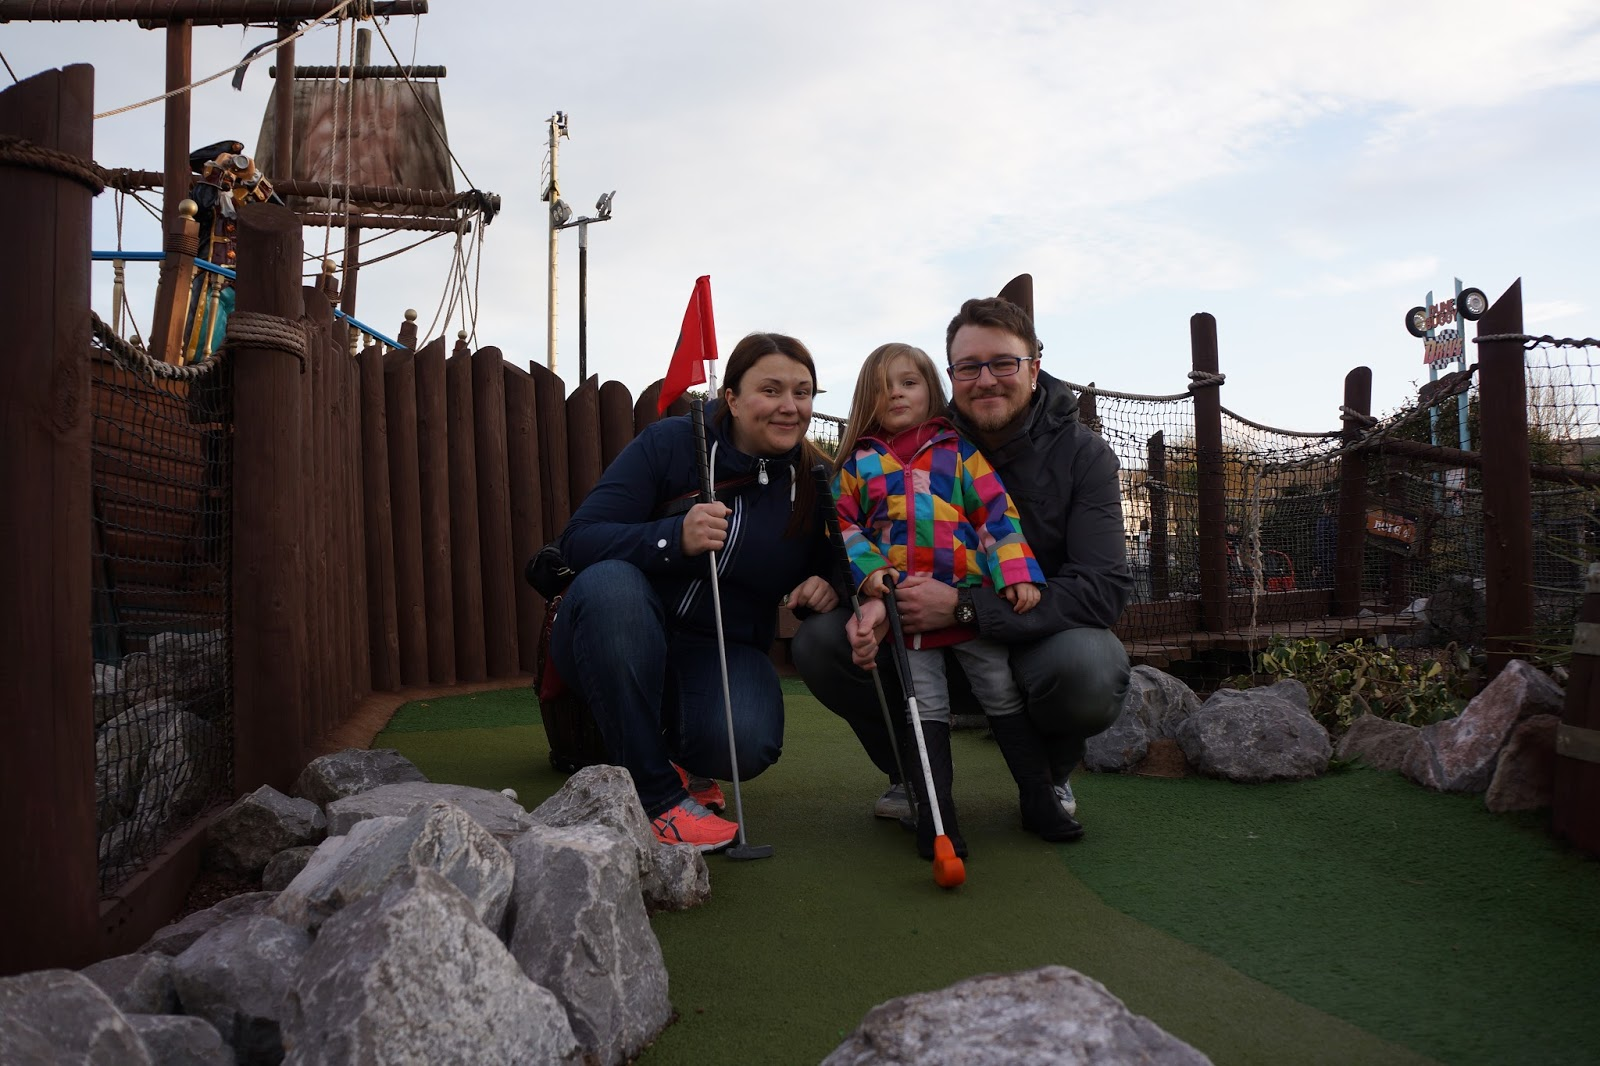 family picture at butlins minehead playing mini golf